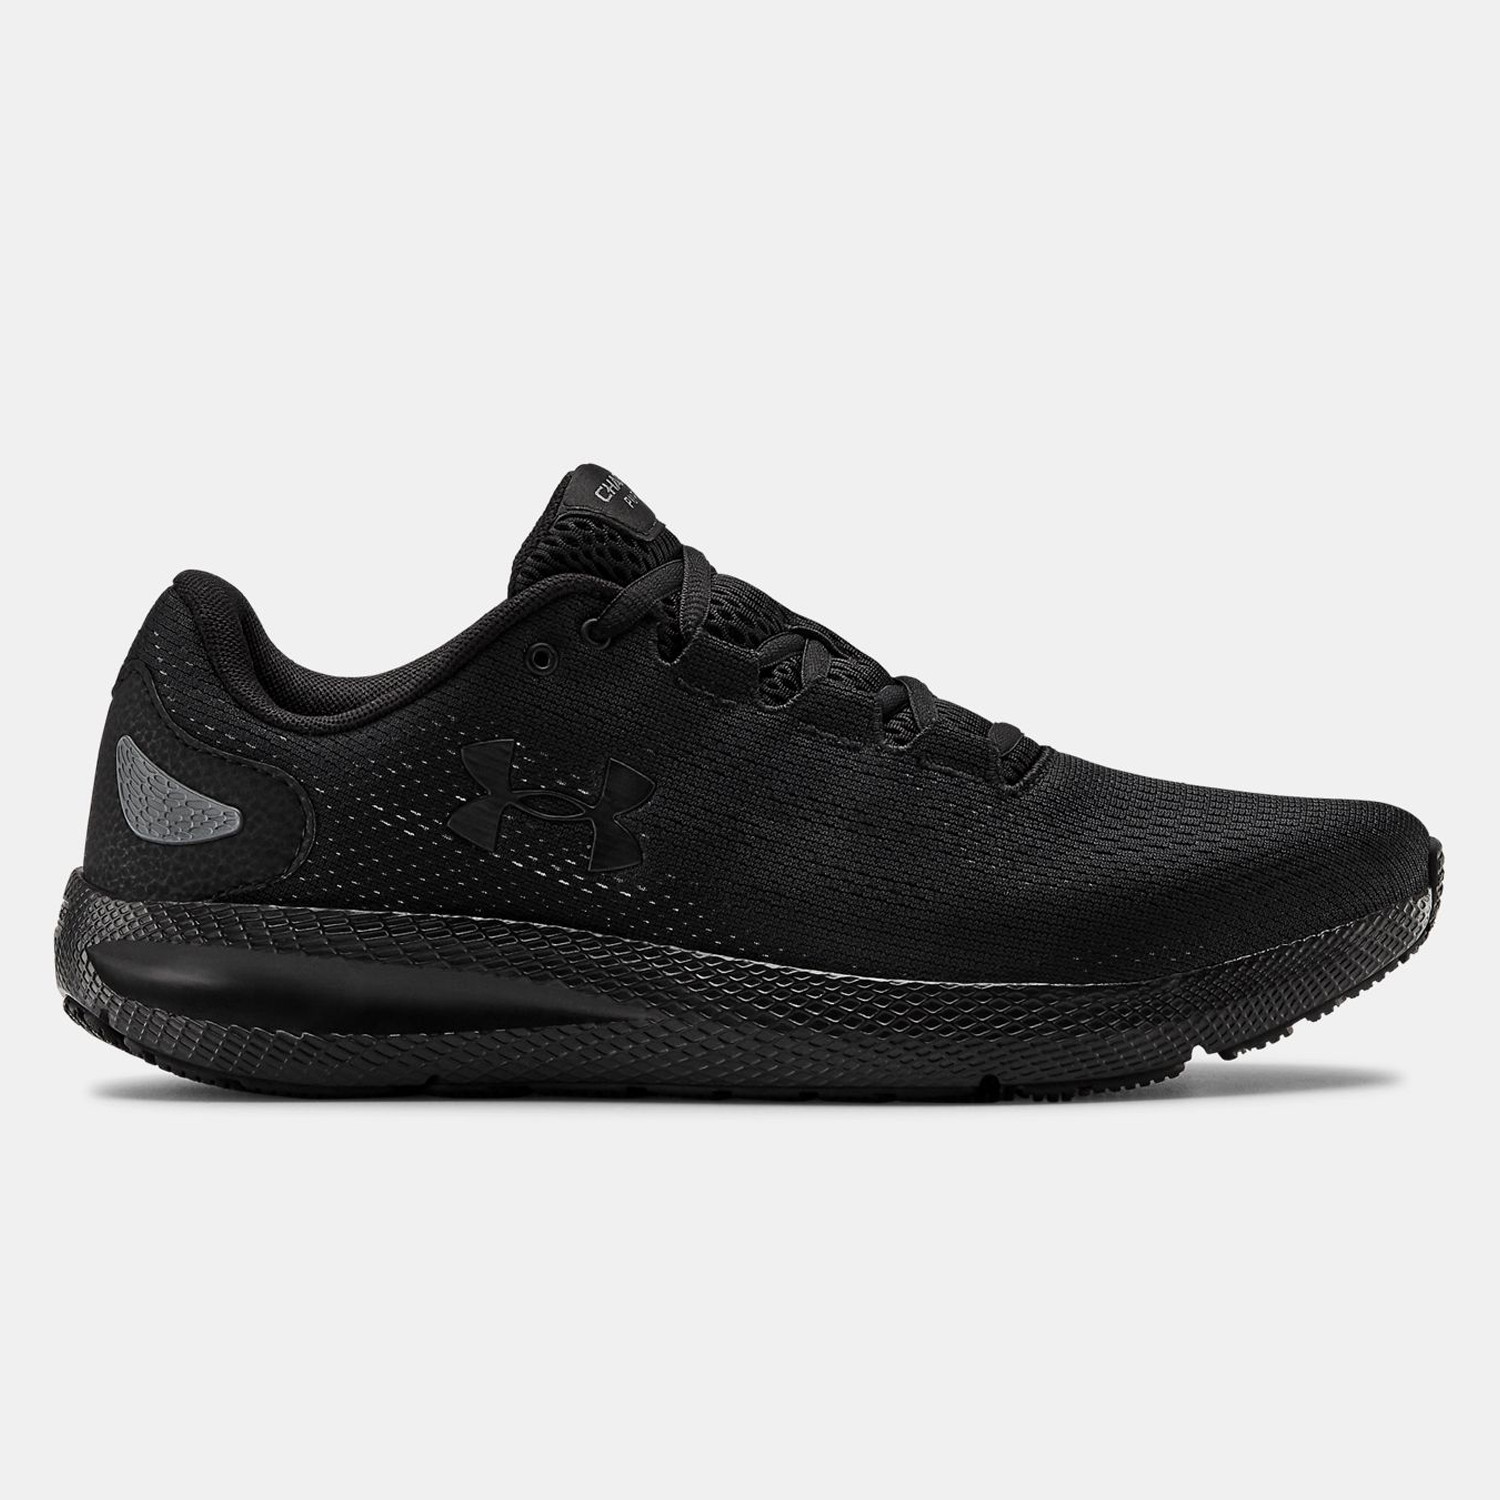 Under Armour Charged Pursuit 2 Men's Shoes (9000047890_3625)